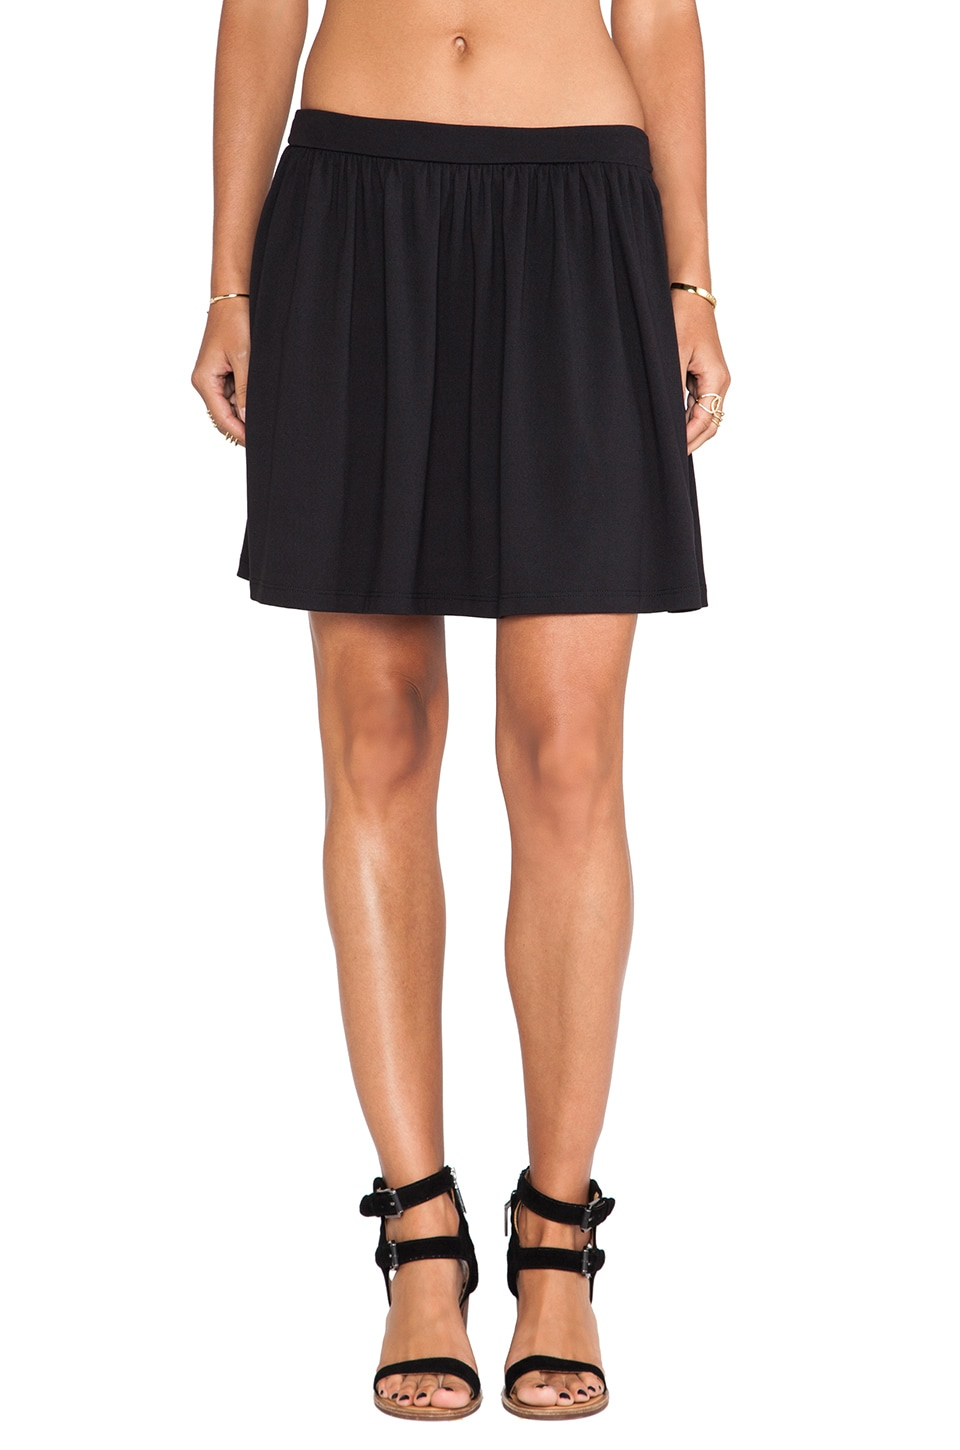 Susana Monaco Light Supplex Flair Skirt 17